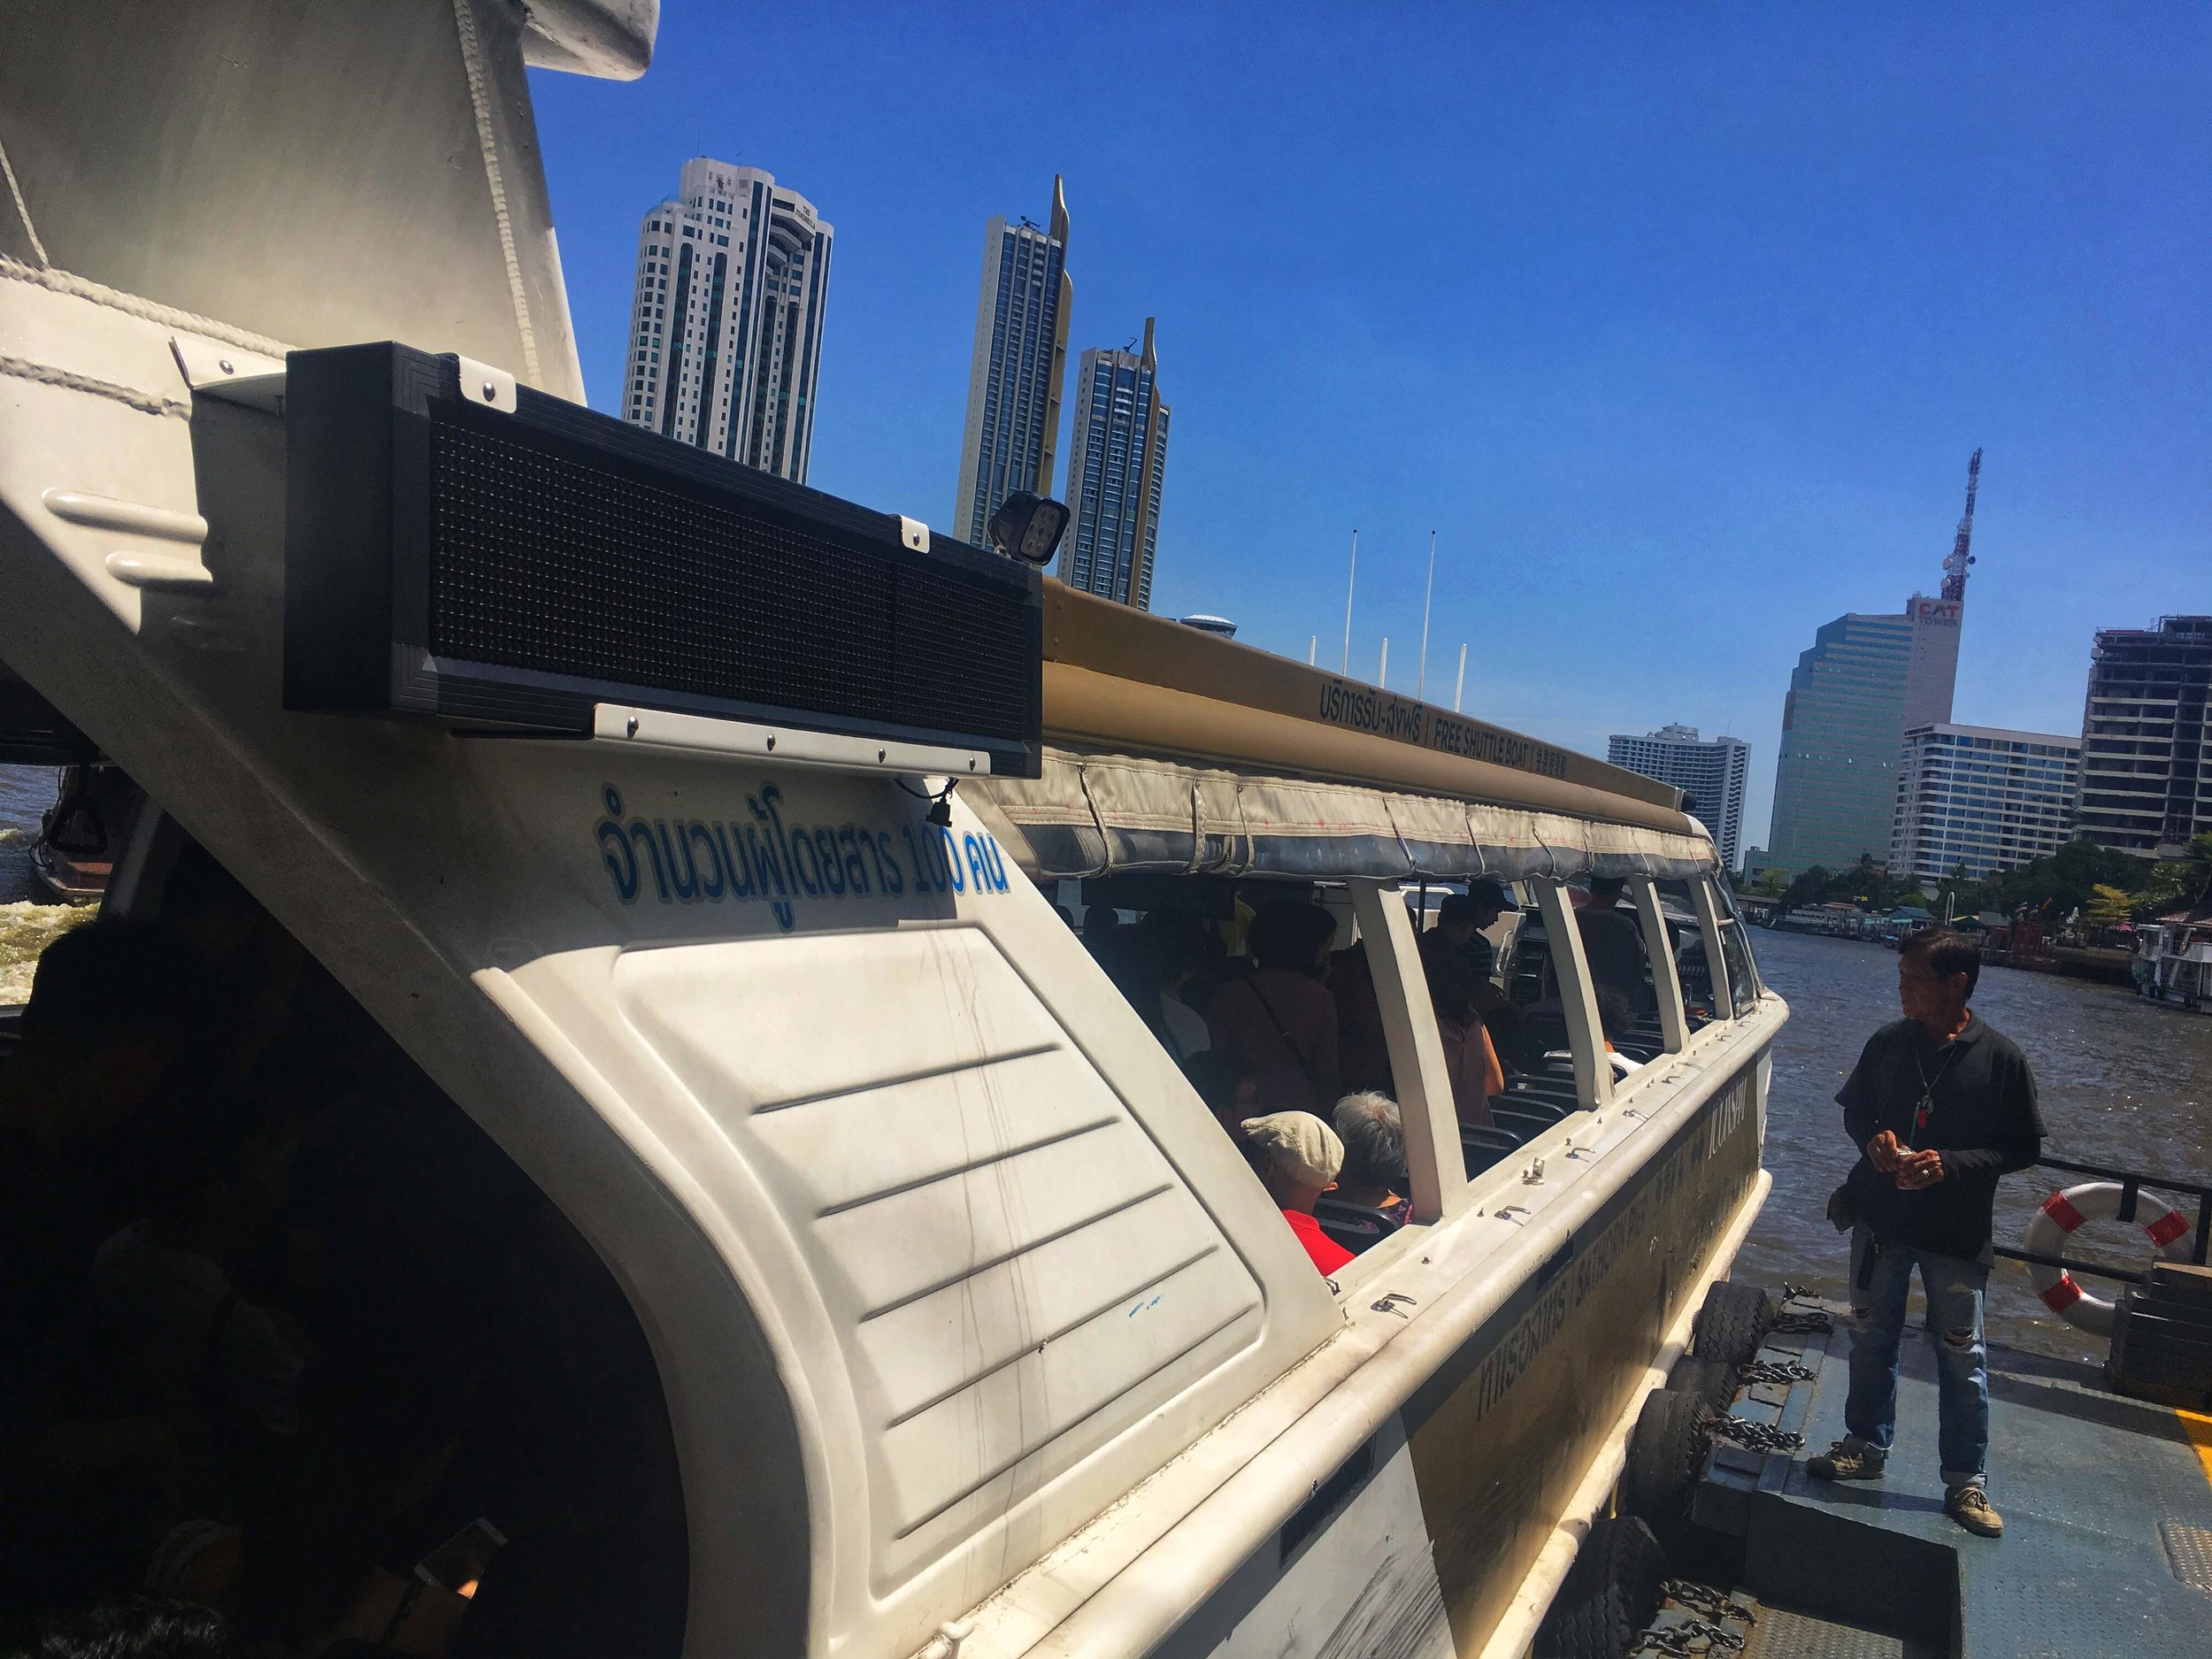 shuttle boat to IconSiam mall on the Chaophraya River, Bangkok